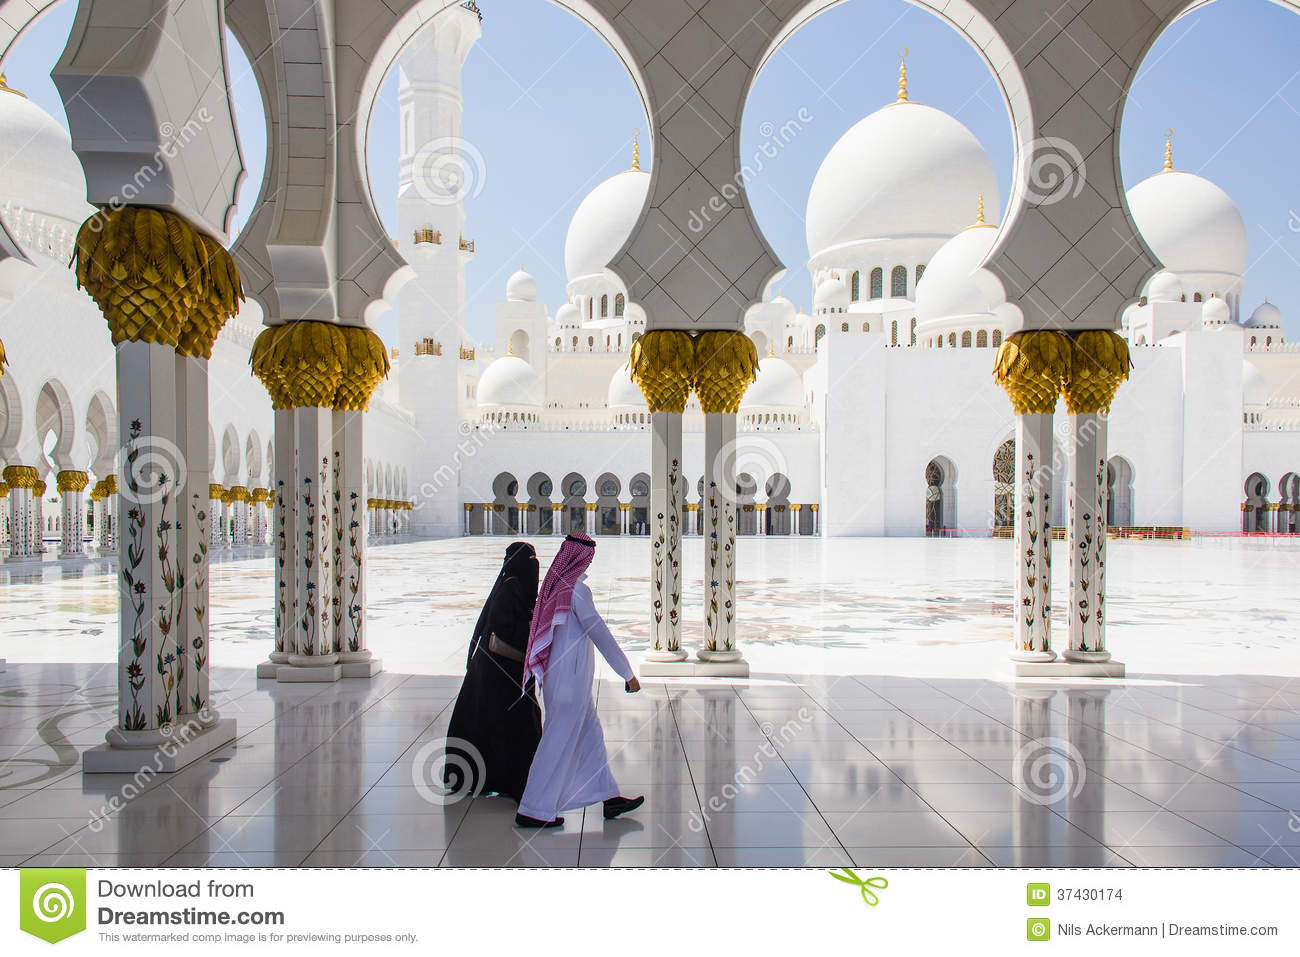 Download Muslim Man And Woman Walking At Sheikh Zayed Grand Mosque Taken On March 31, 2013 In Abu Dhabi, Unit Editorial Stock Image - Image of prayer, couple: 37430174